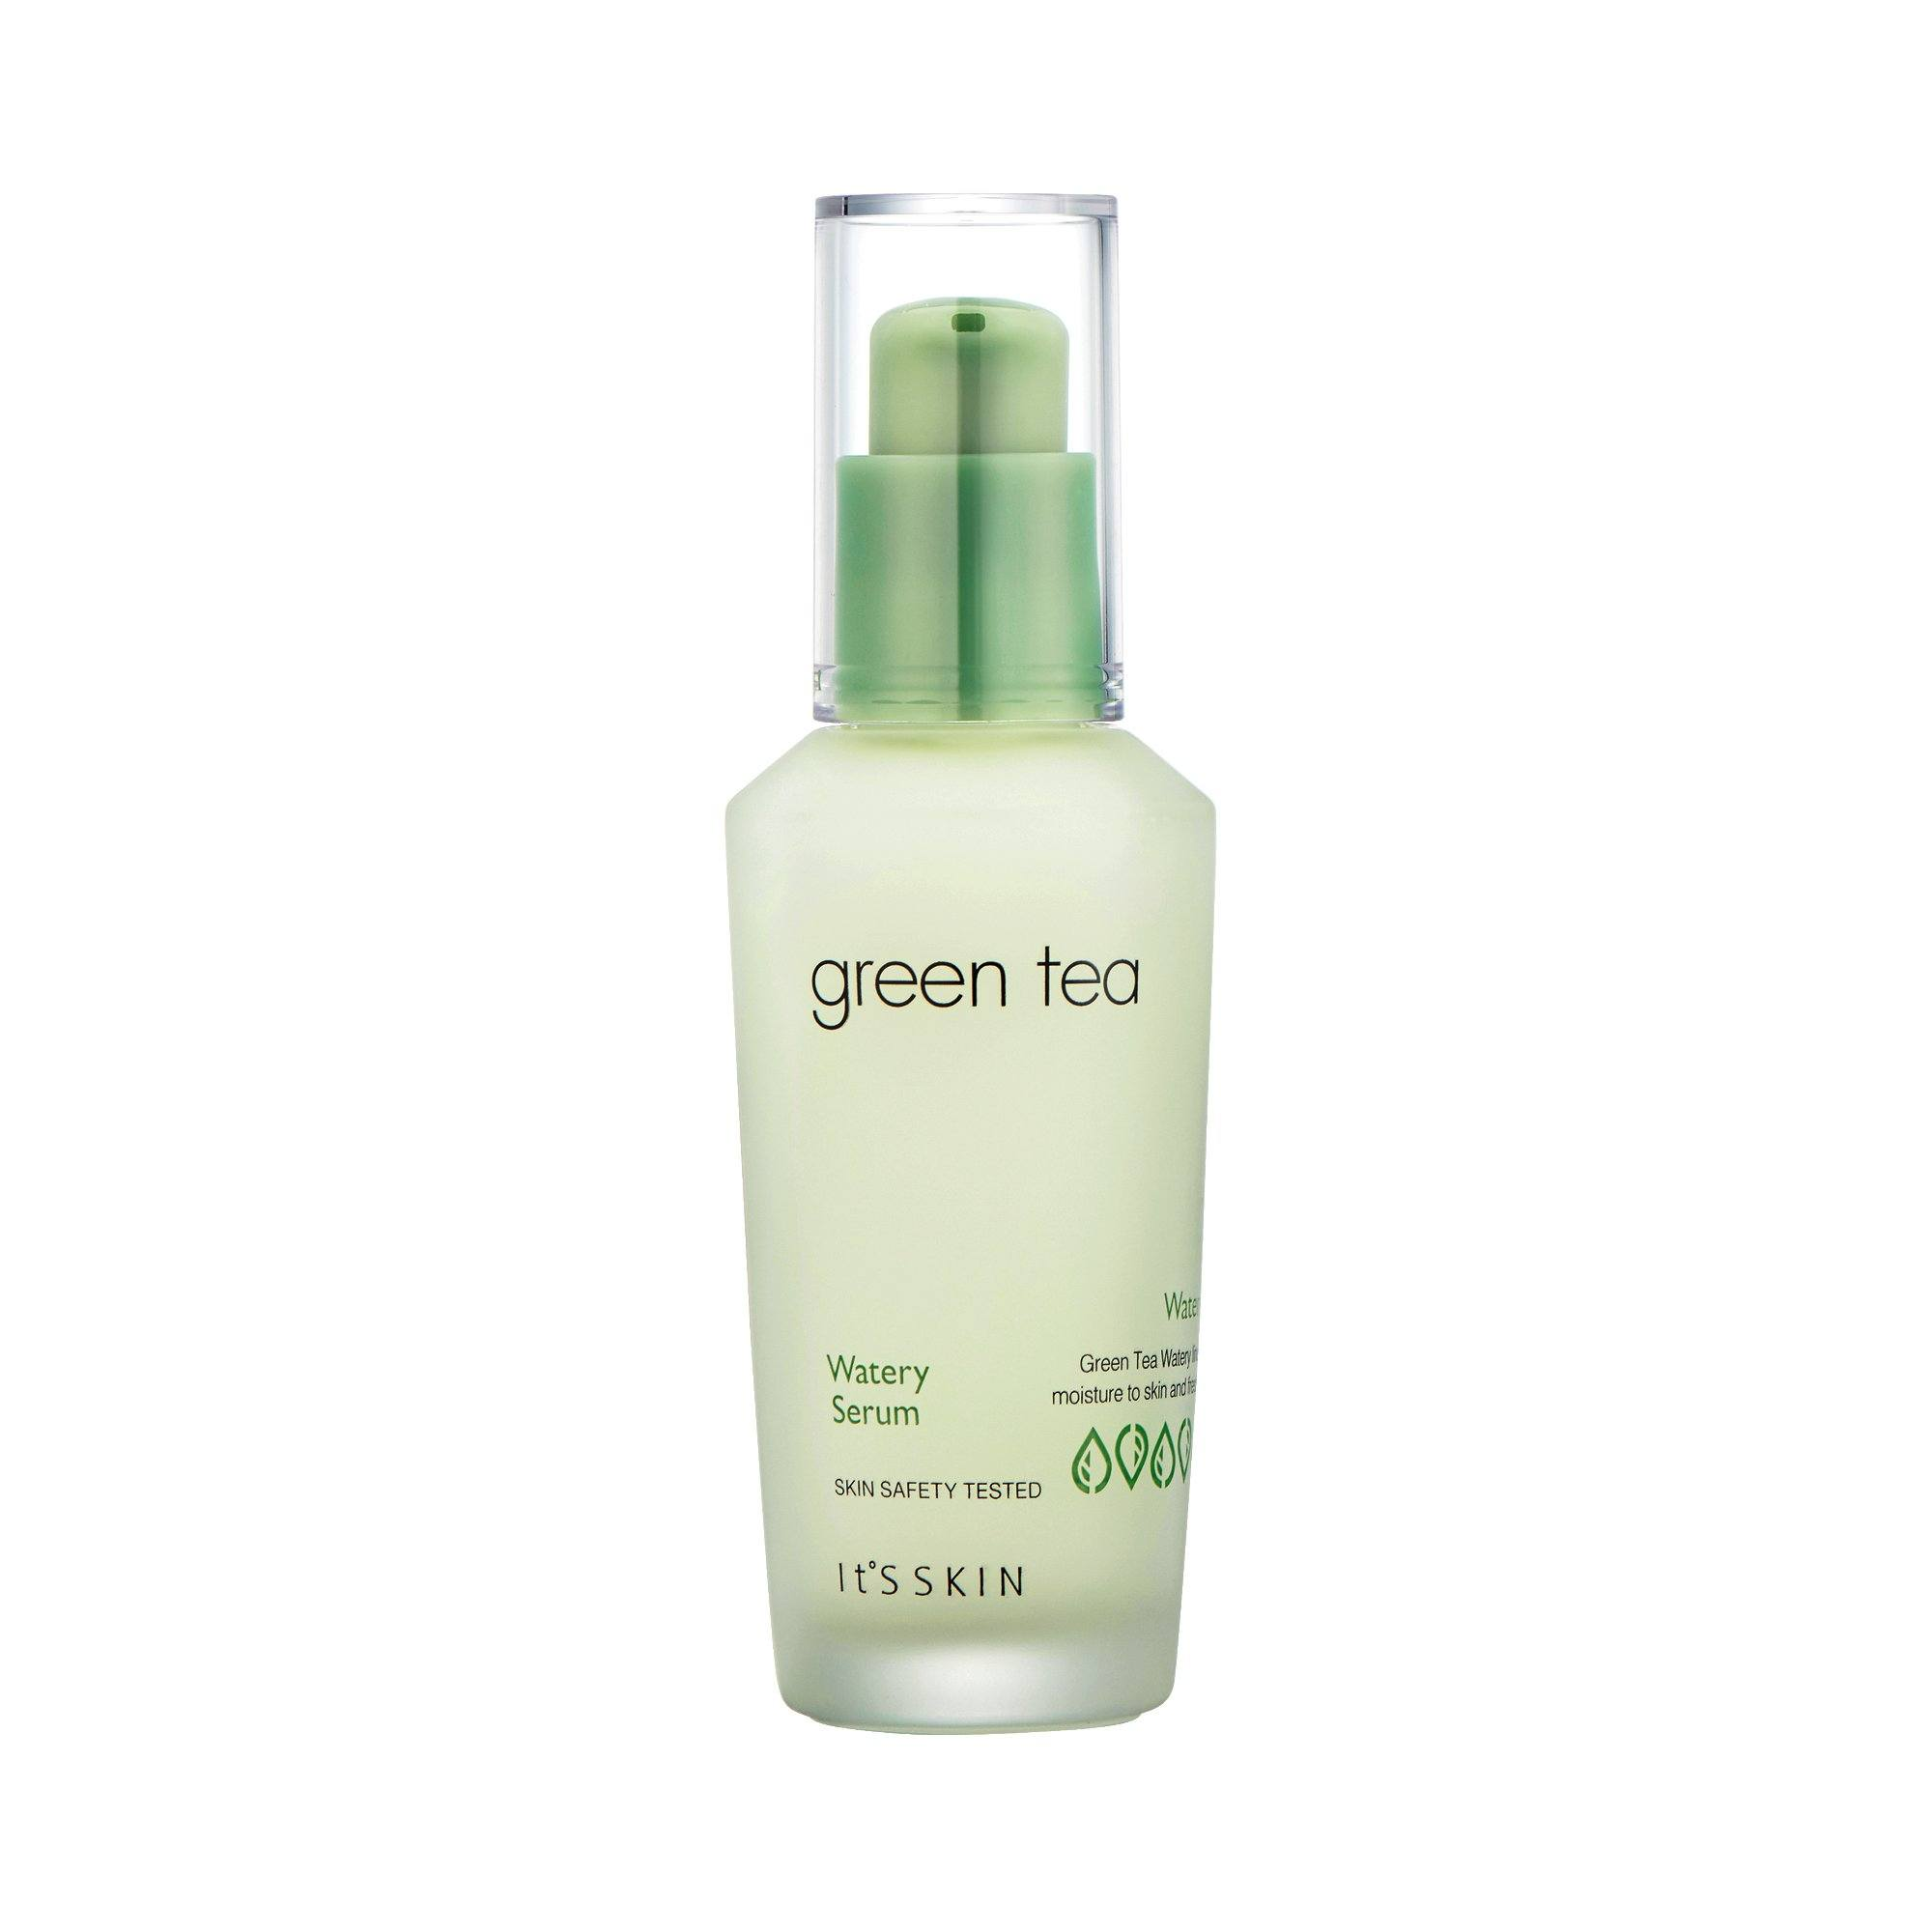 Health & Beauty > Personal Care > Cosmetics > Skin Care > Lotion & Moisturizer - Green Tea Watery Serum Do Twarzy 40 Ml